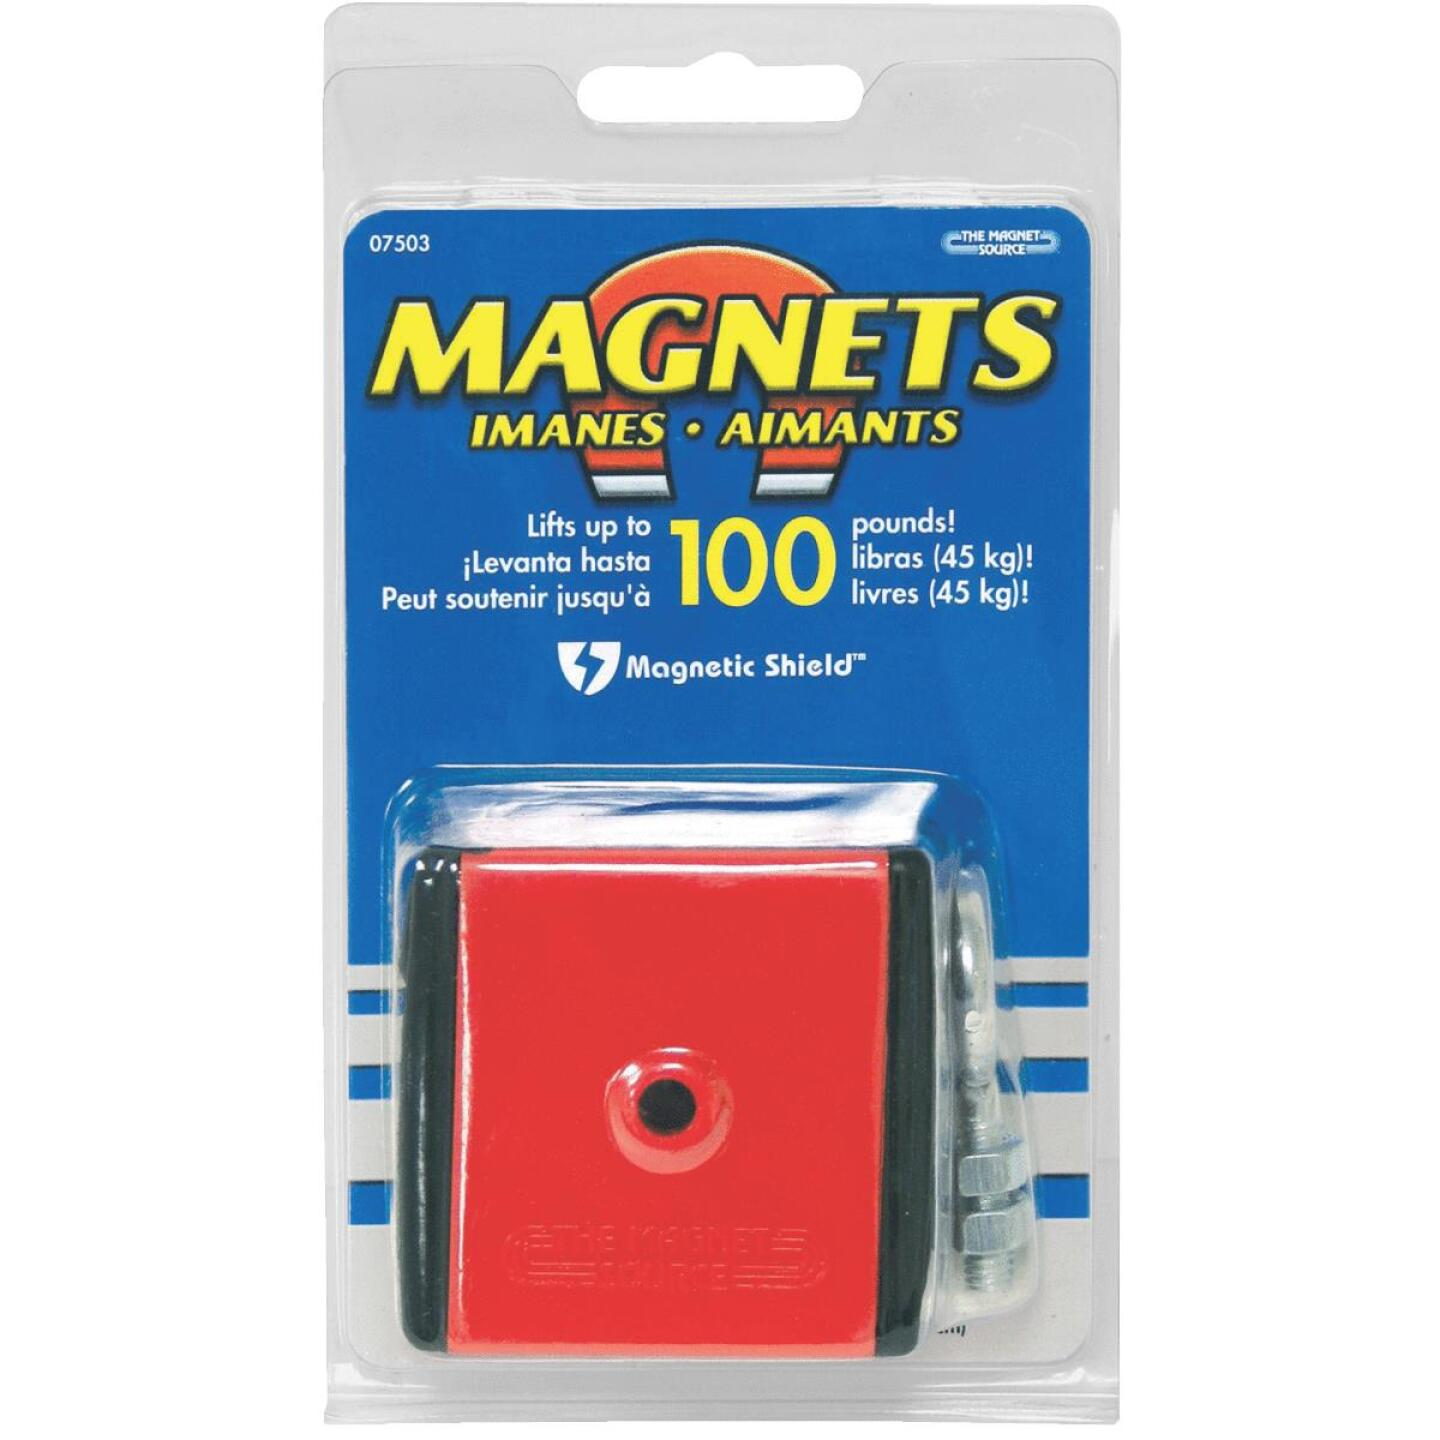 Master Magnetics 100 Lb. Retrieving and Lifting Magnet Image 2